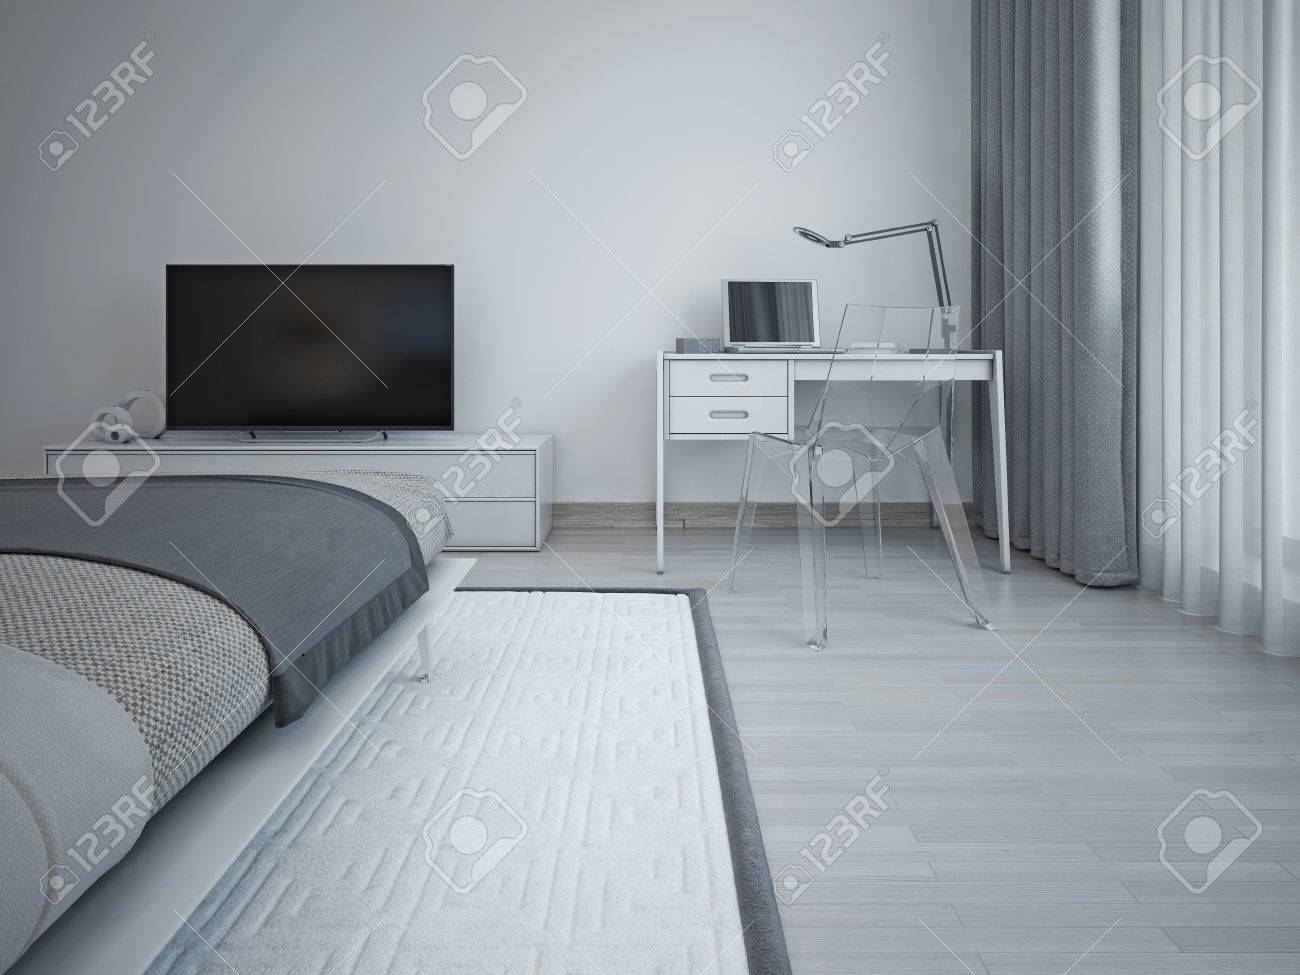 Bedroom Interior In Minimalist Style Gray Walls Laminate Flooring Exquisite Bed And TV